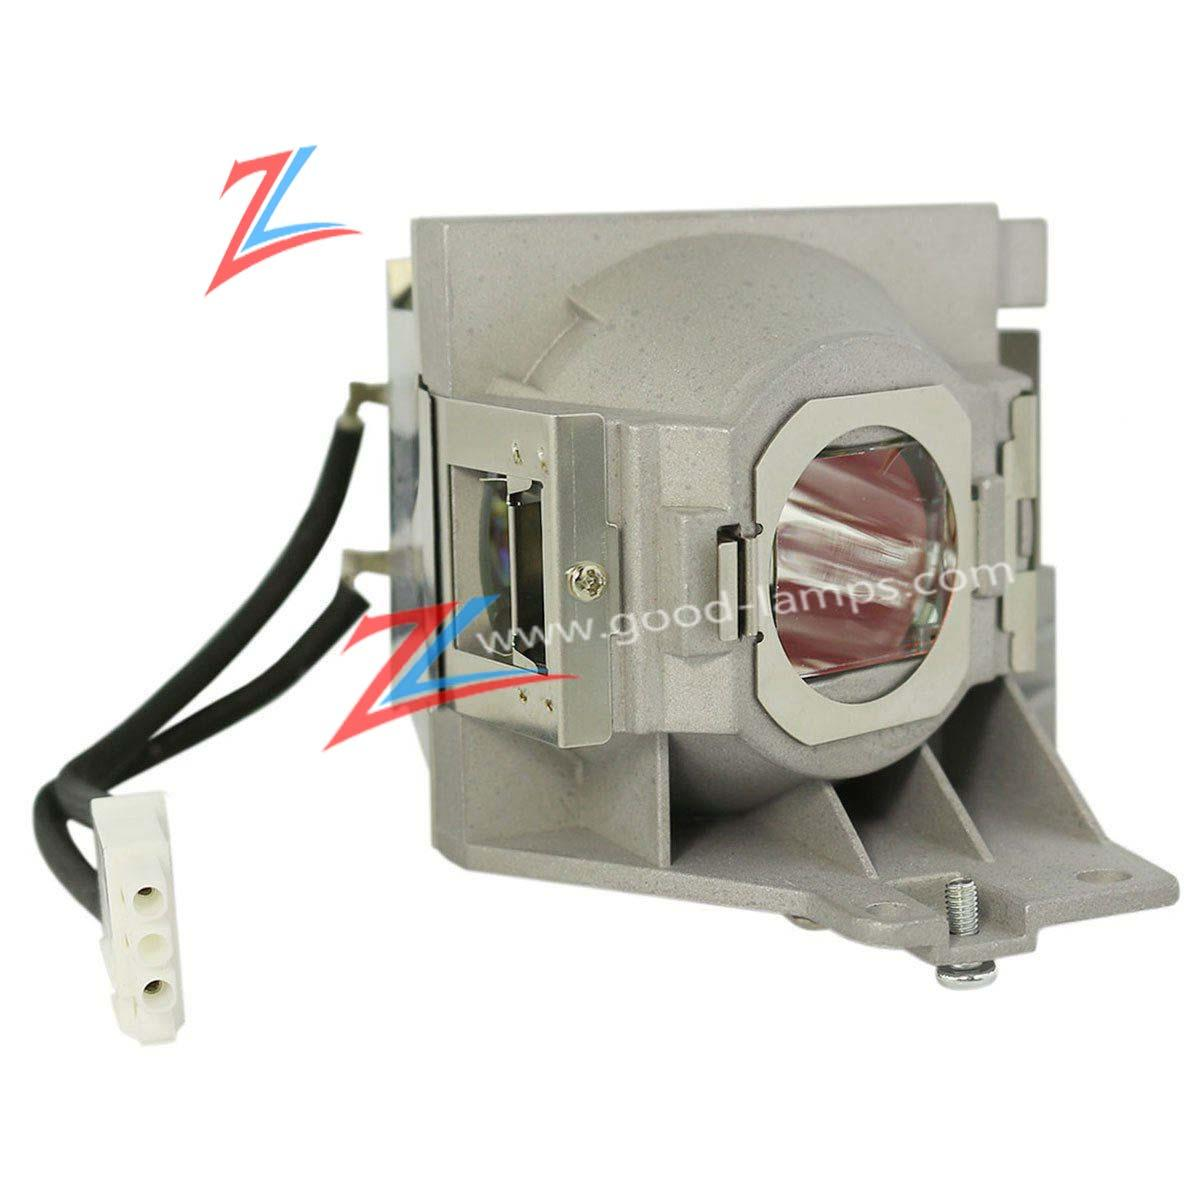 VIEWSONIC PJD6352, PPJD6352LS Projector Lamp with Philips bulb inside RLC-097